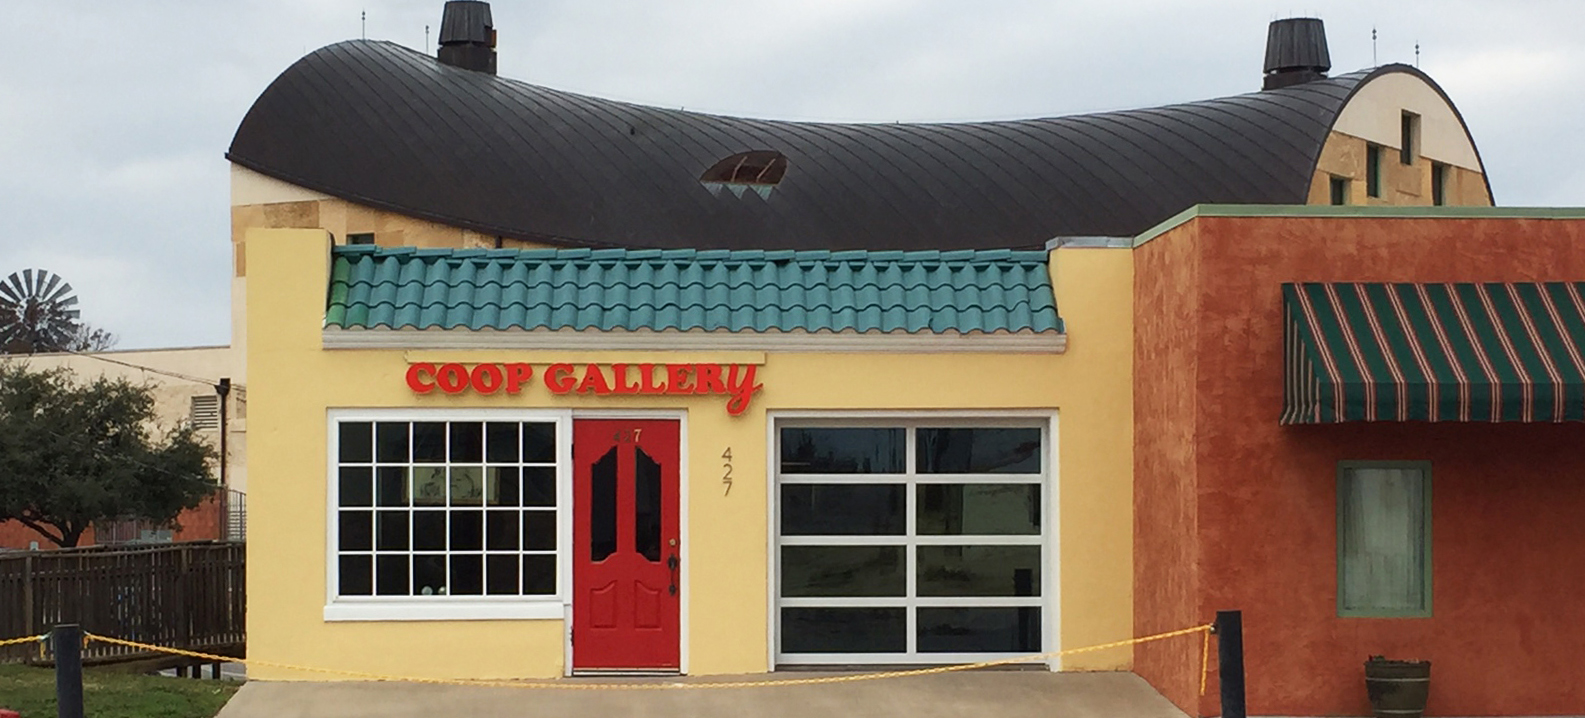 San Angelo Museum Of Fine Arts, Coop Gallery, 427 South Oakes Street